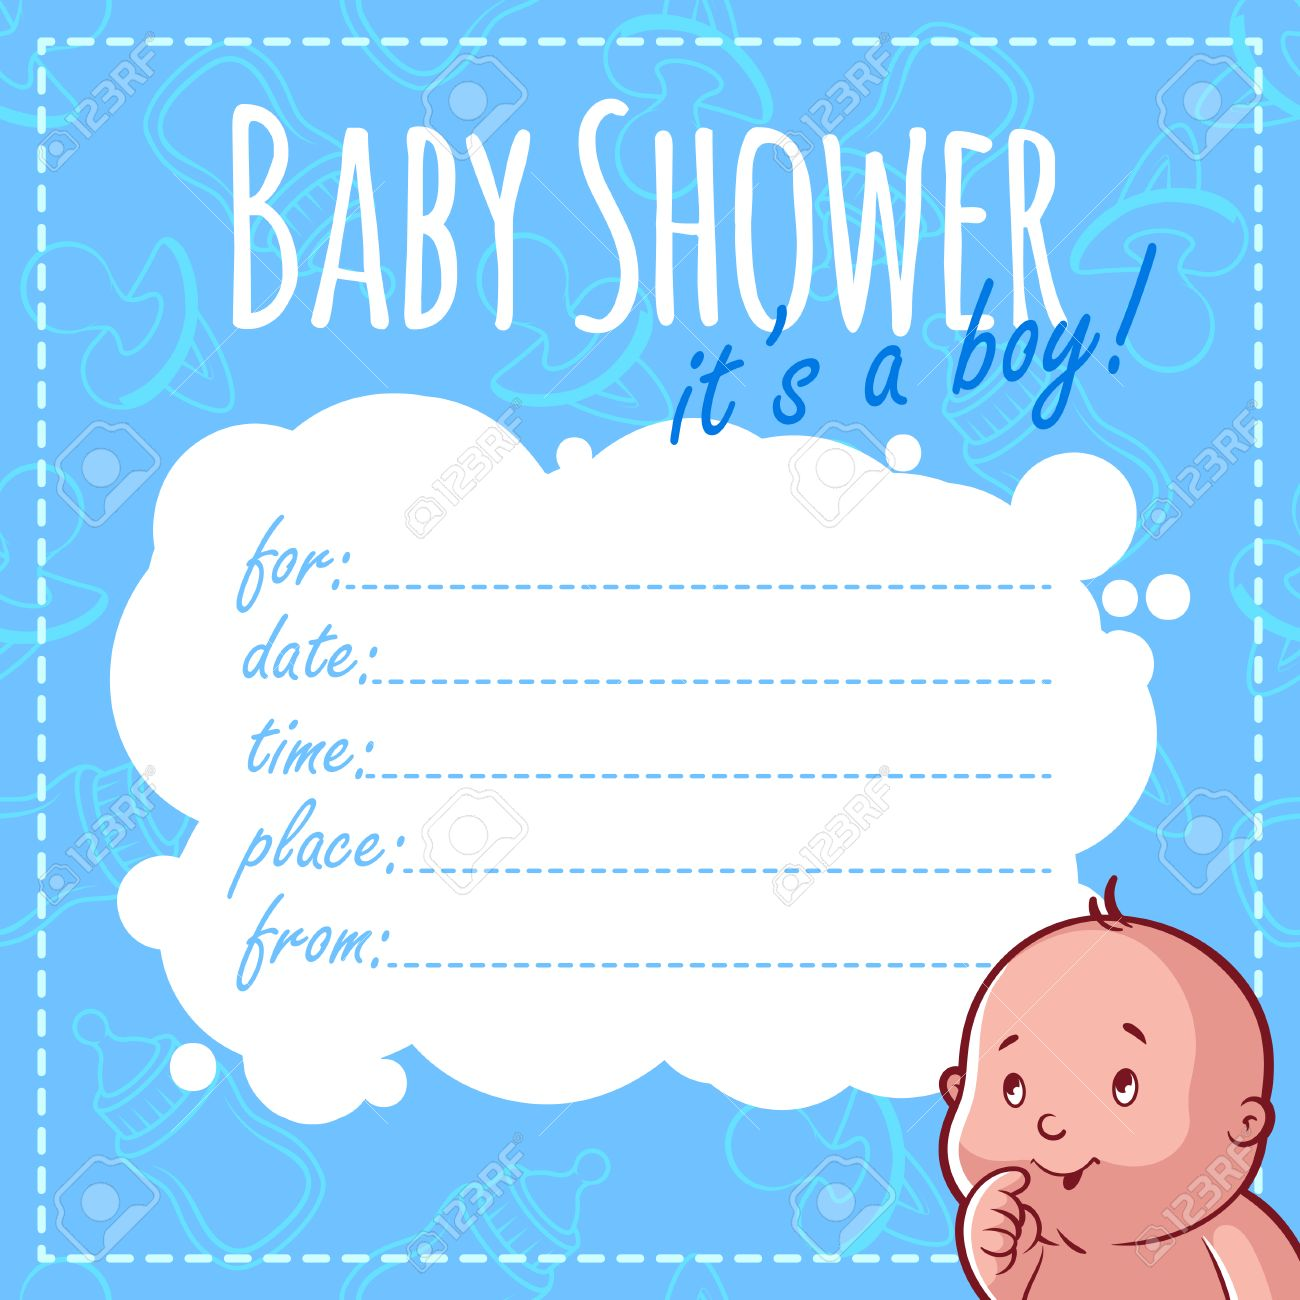 Baby Shower Card It S A Boy Blank Baby Shower Invitations For